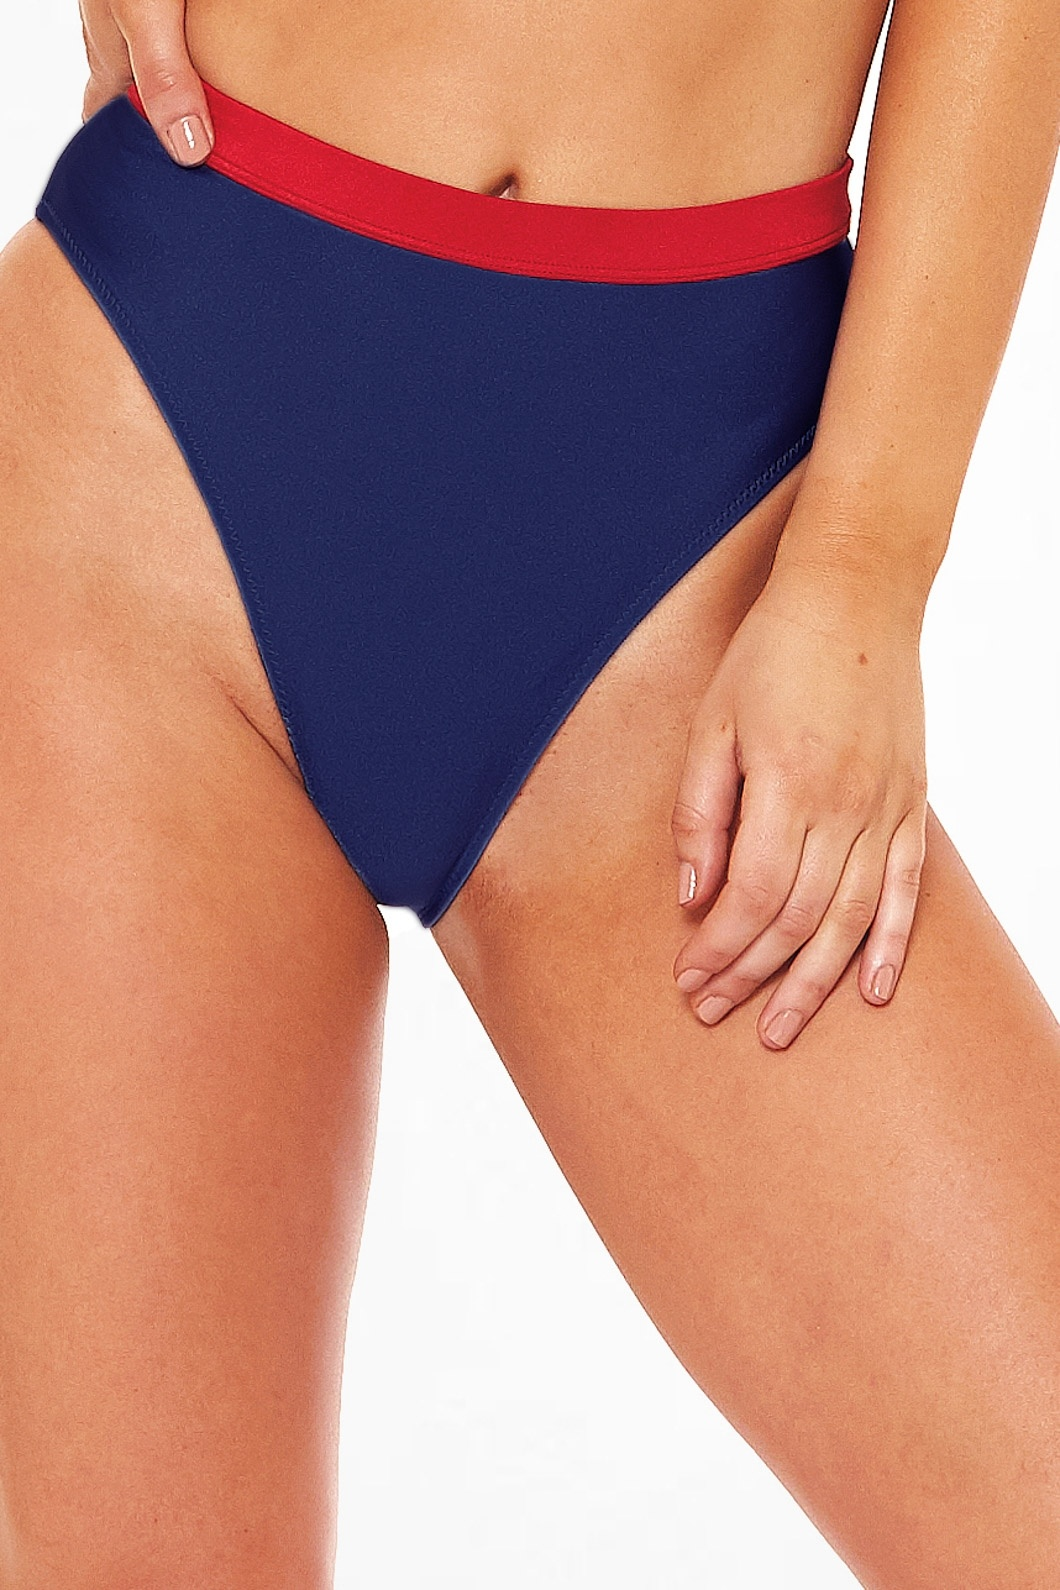 L'urv On Target Bikini Bottom - Navy Red